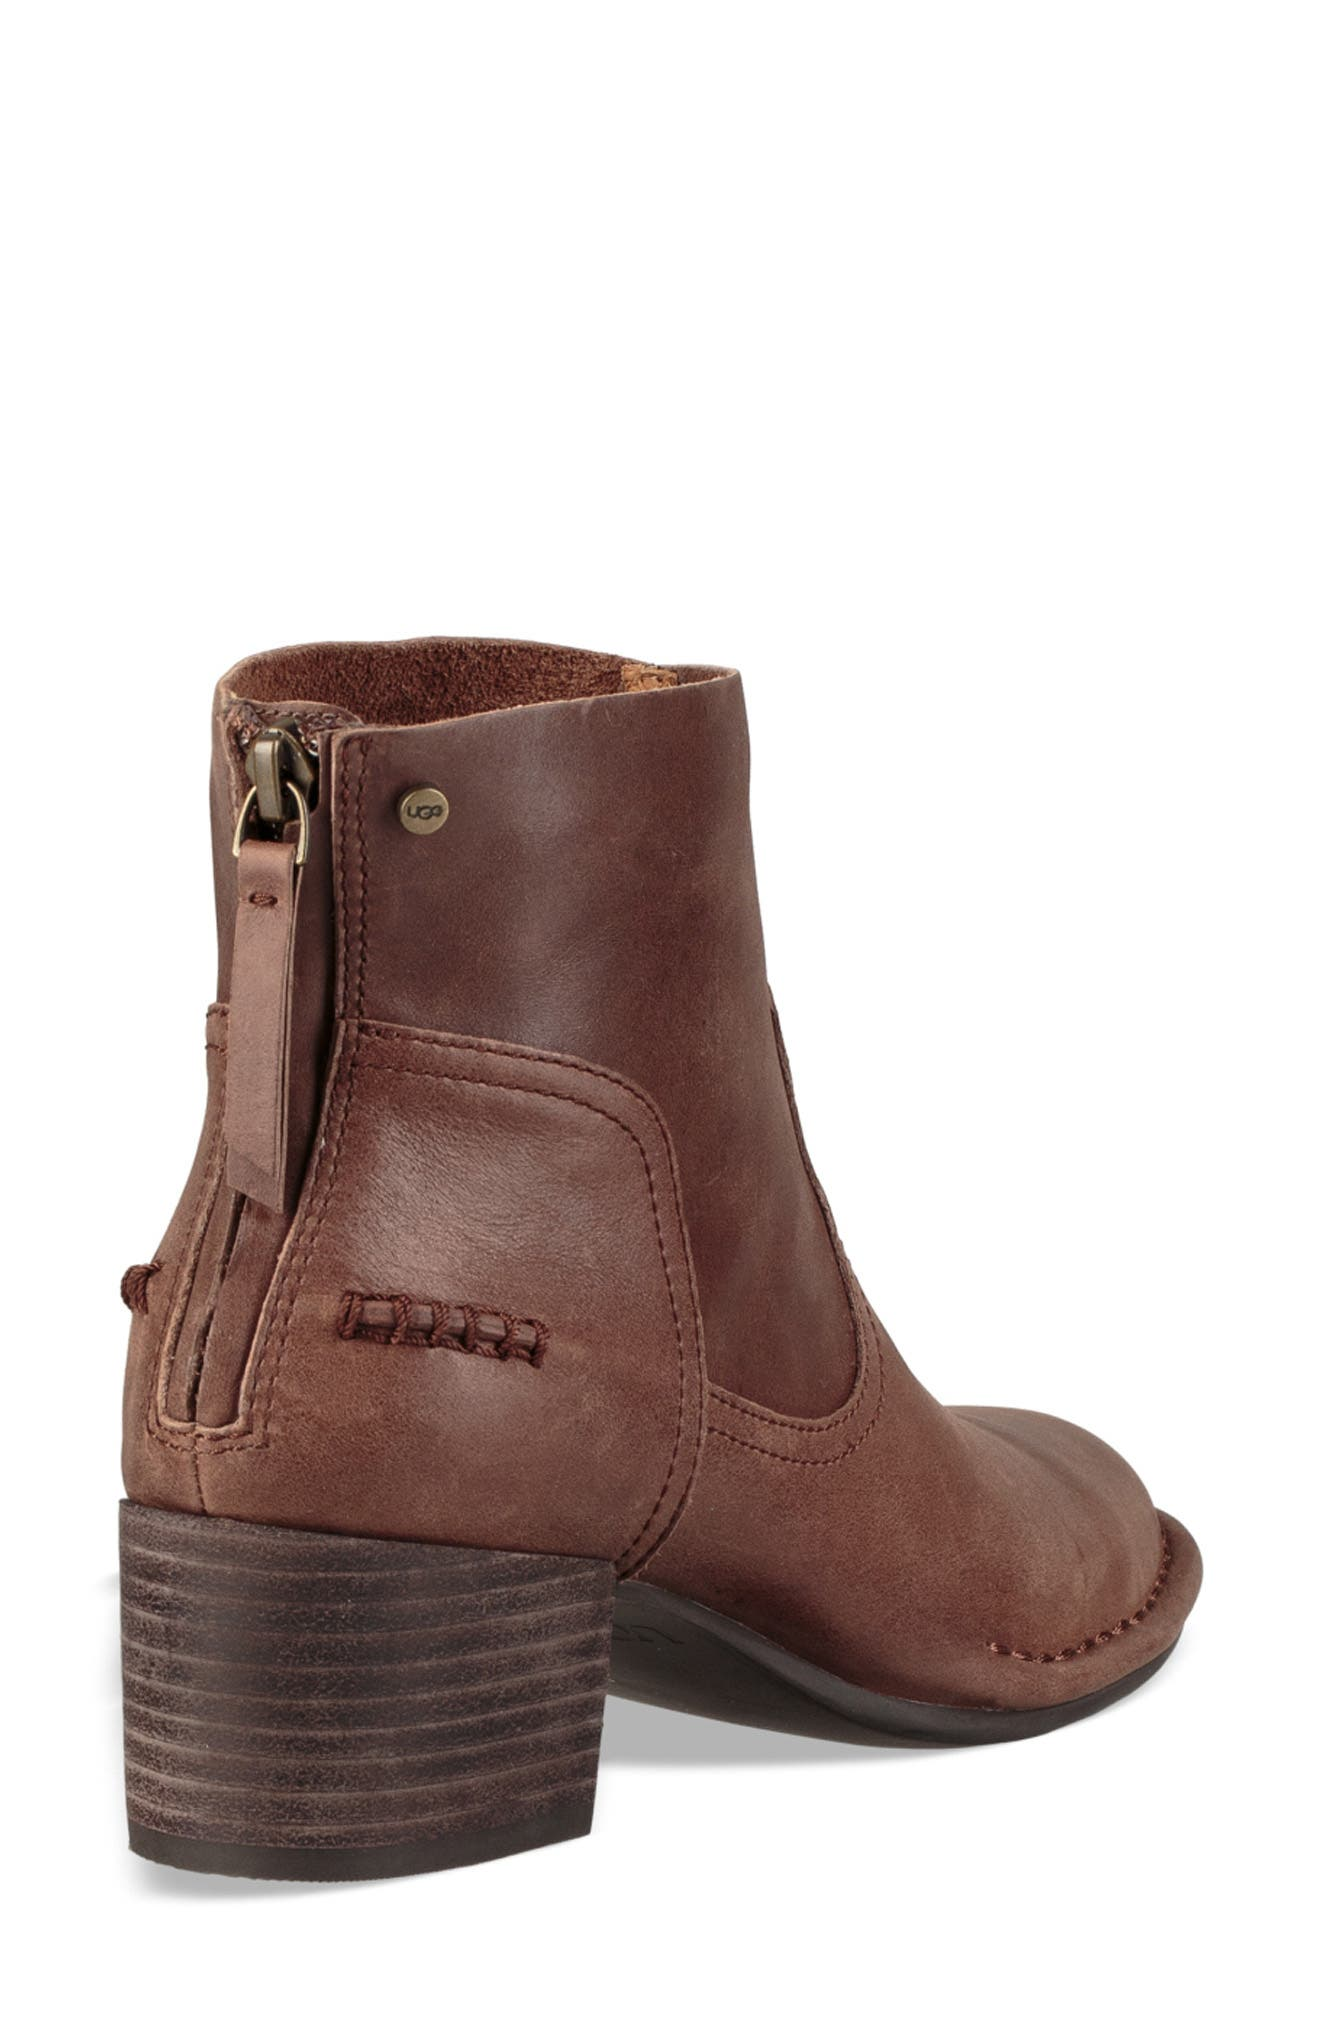 4f810ea705e8 Women s UGG® Booties   Ankle Boots